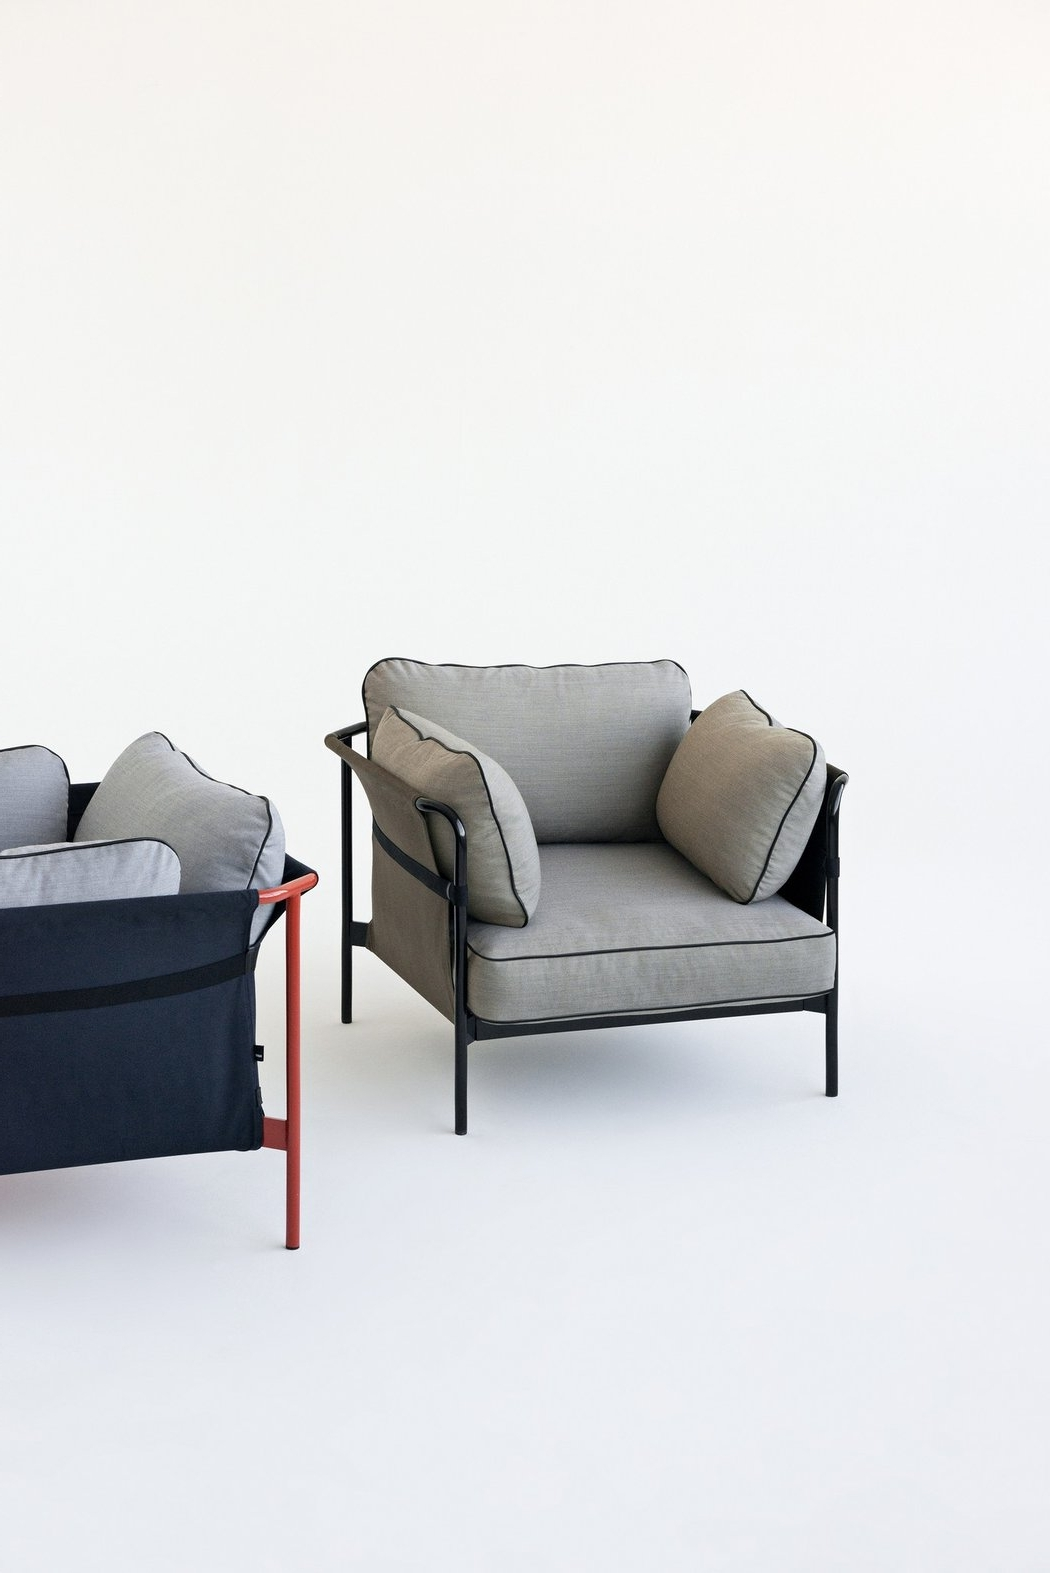 2018 Armchair : Best Sleeper Chairs Armchair With Ottoman Sofa Chair Intended For Rocking Sofa Chairs (View 15 of 20)